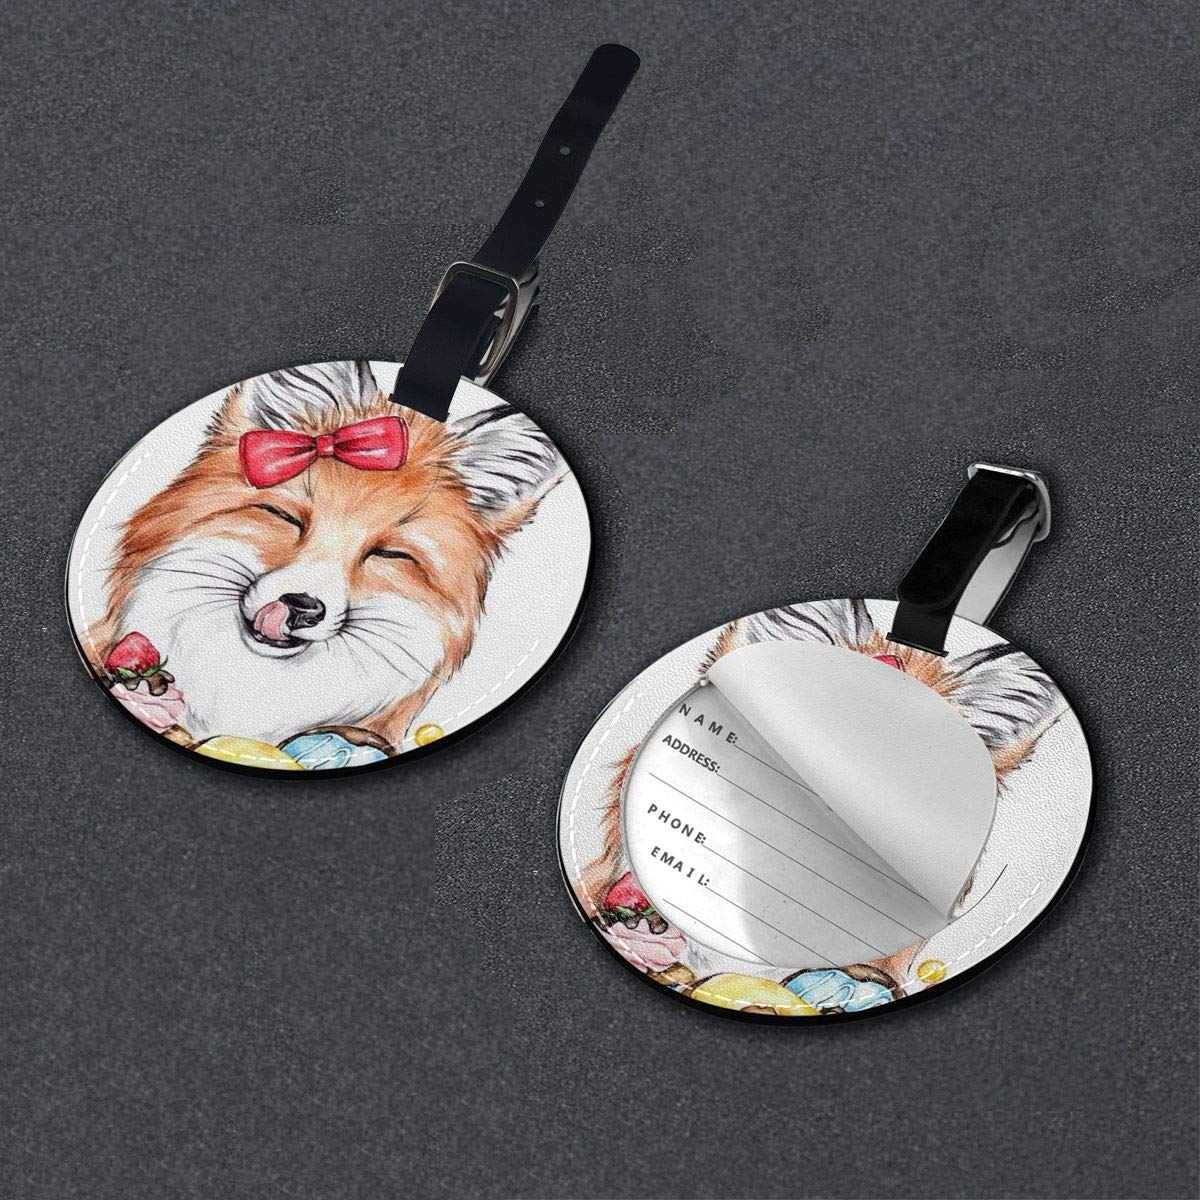 Lovely Sweet Dessert Fox Luggage Tags Suitcase Luggage Tags Travel Accessories Baggage Name Tags 2 PCS